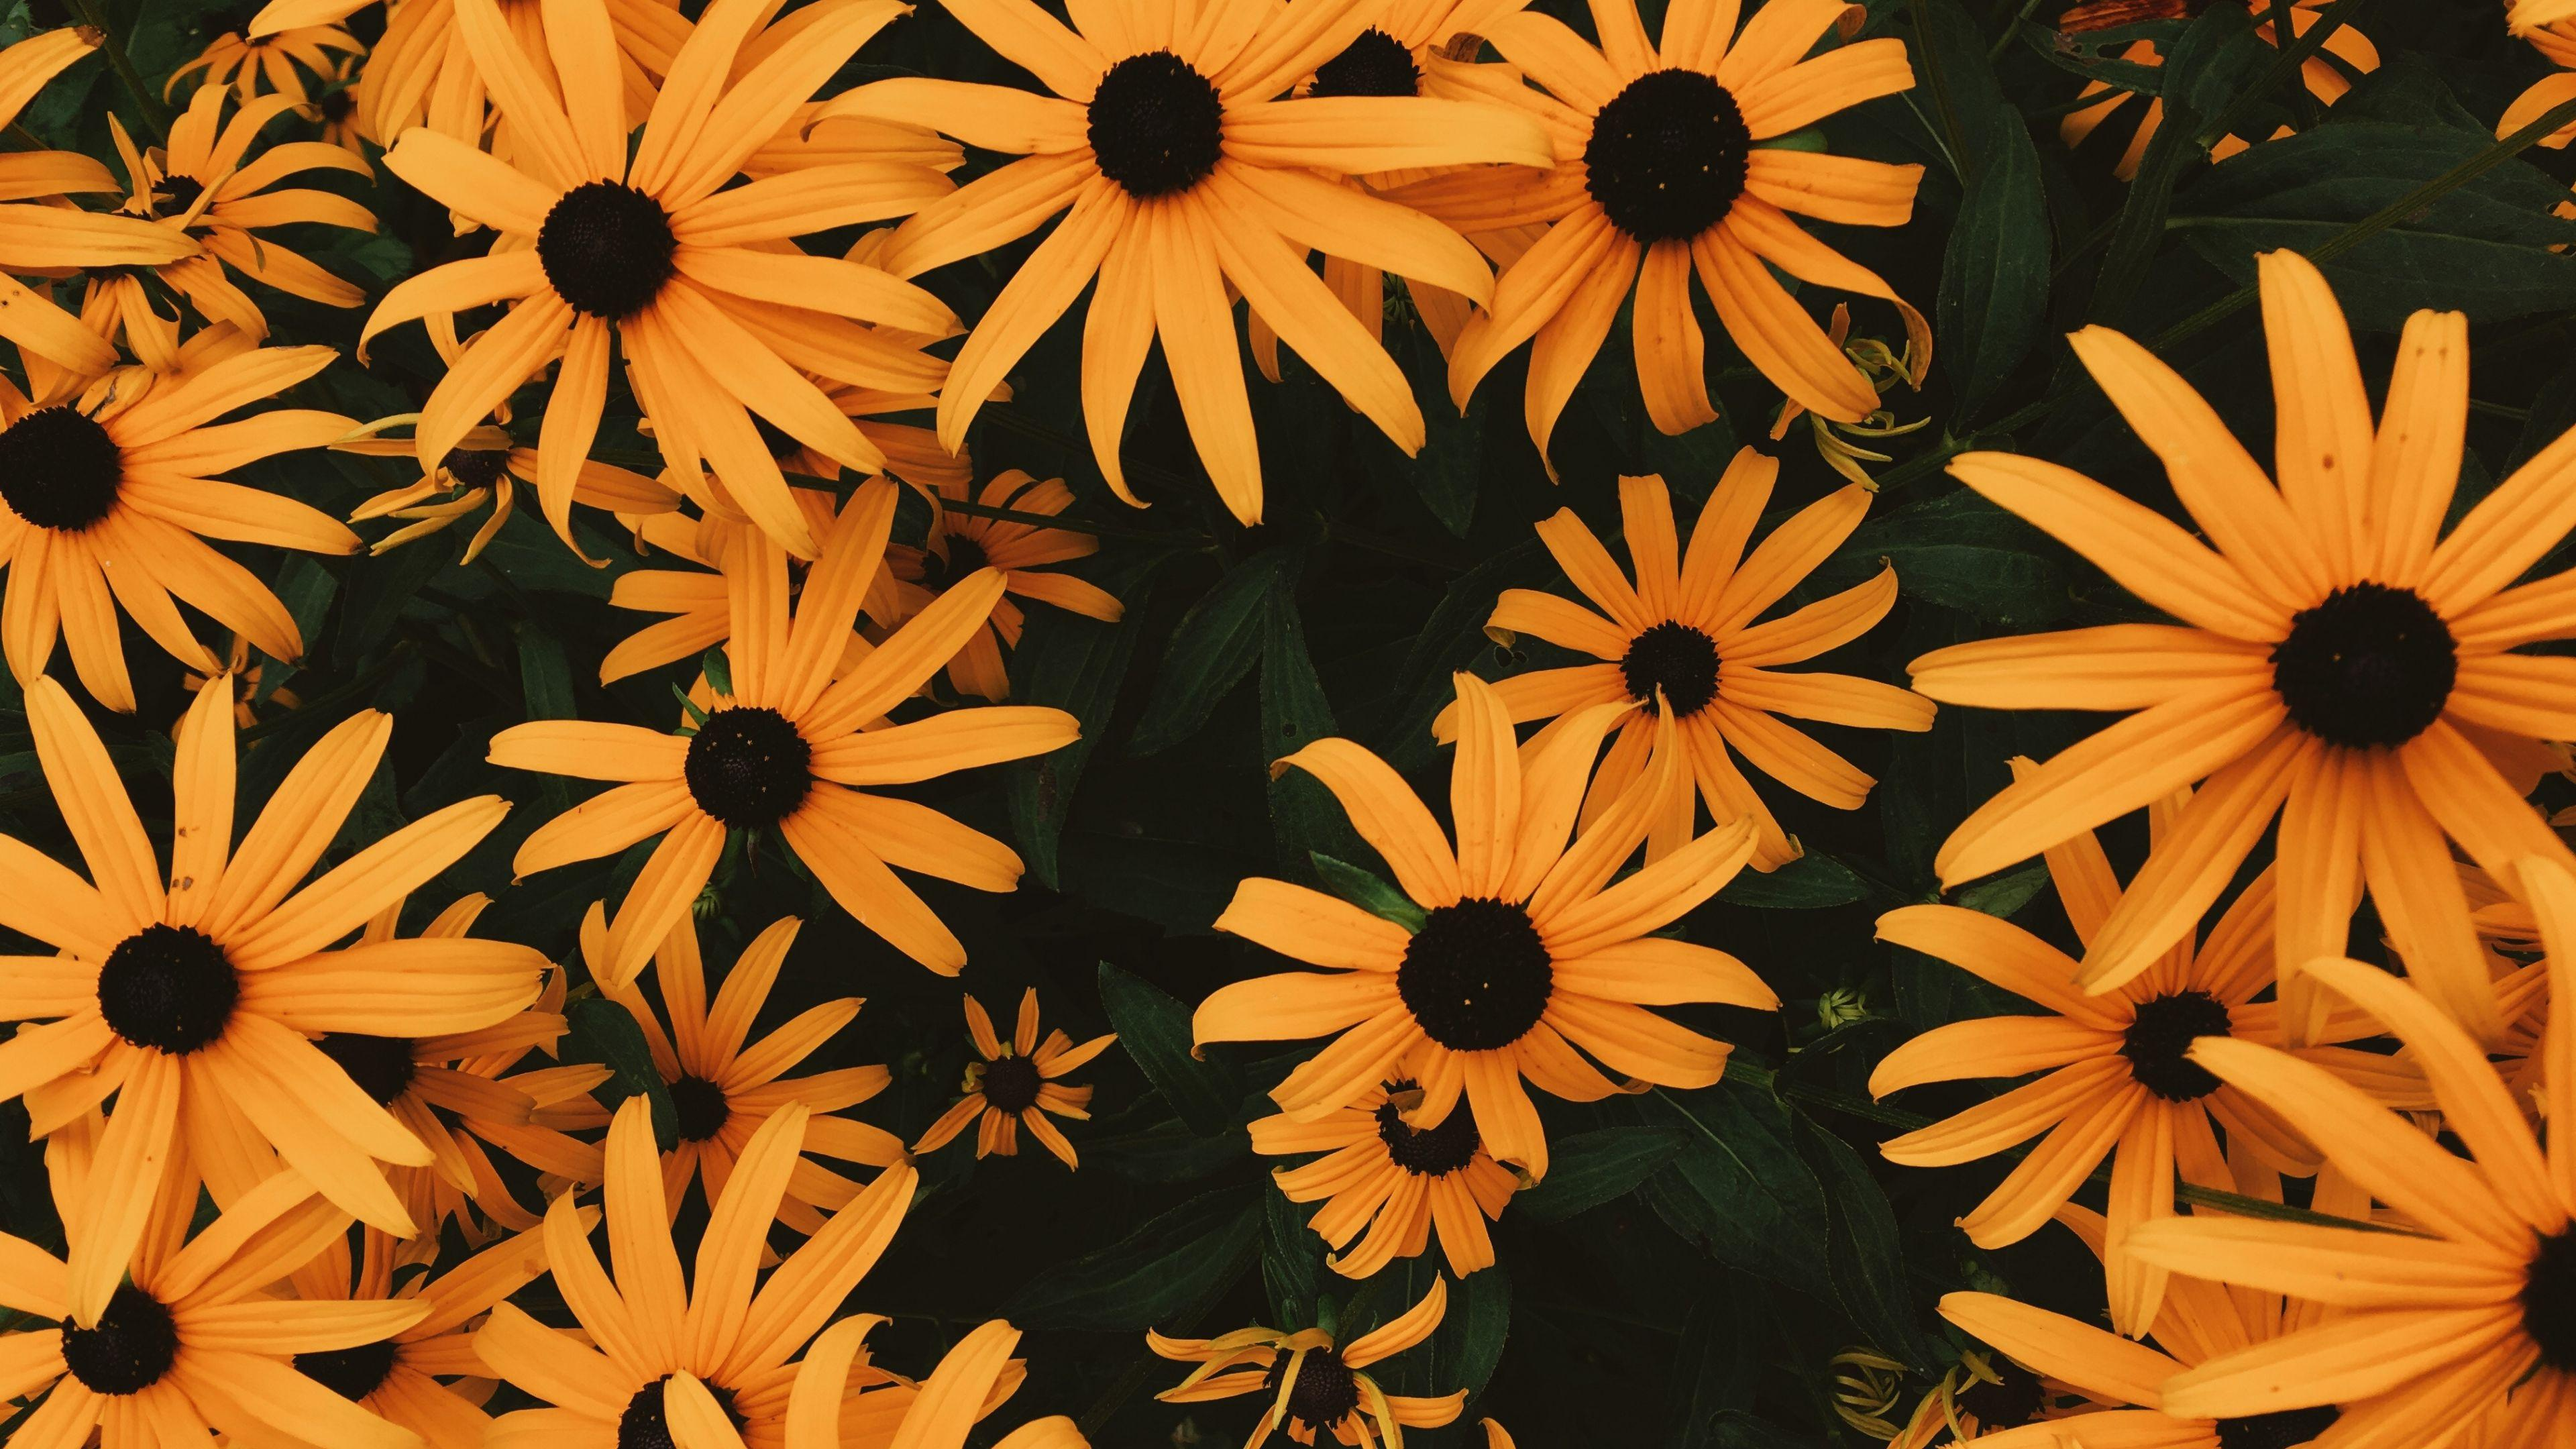 Wallpapers Coneflowers, Flowers, Flowerbed, Many